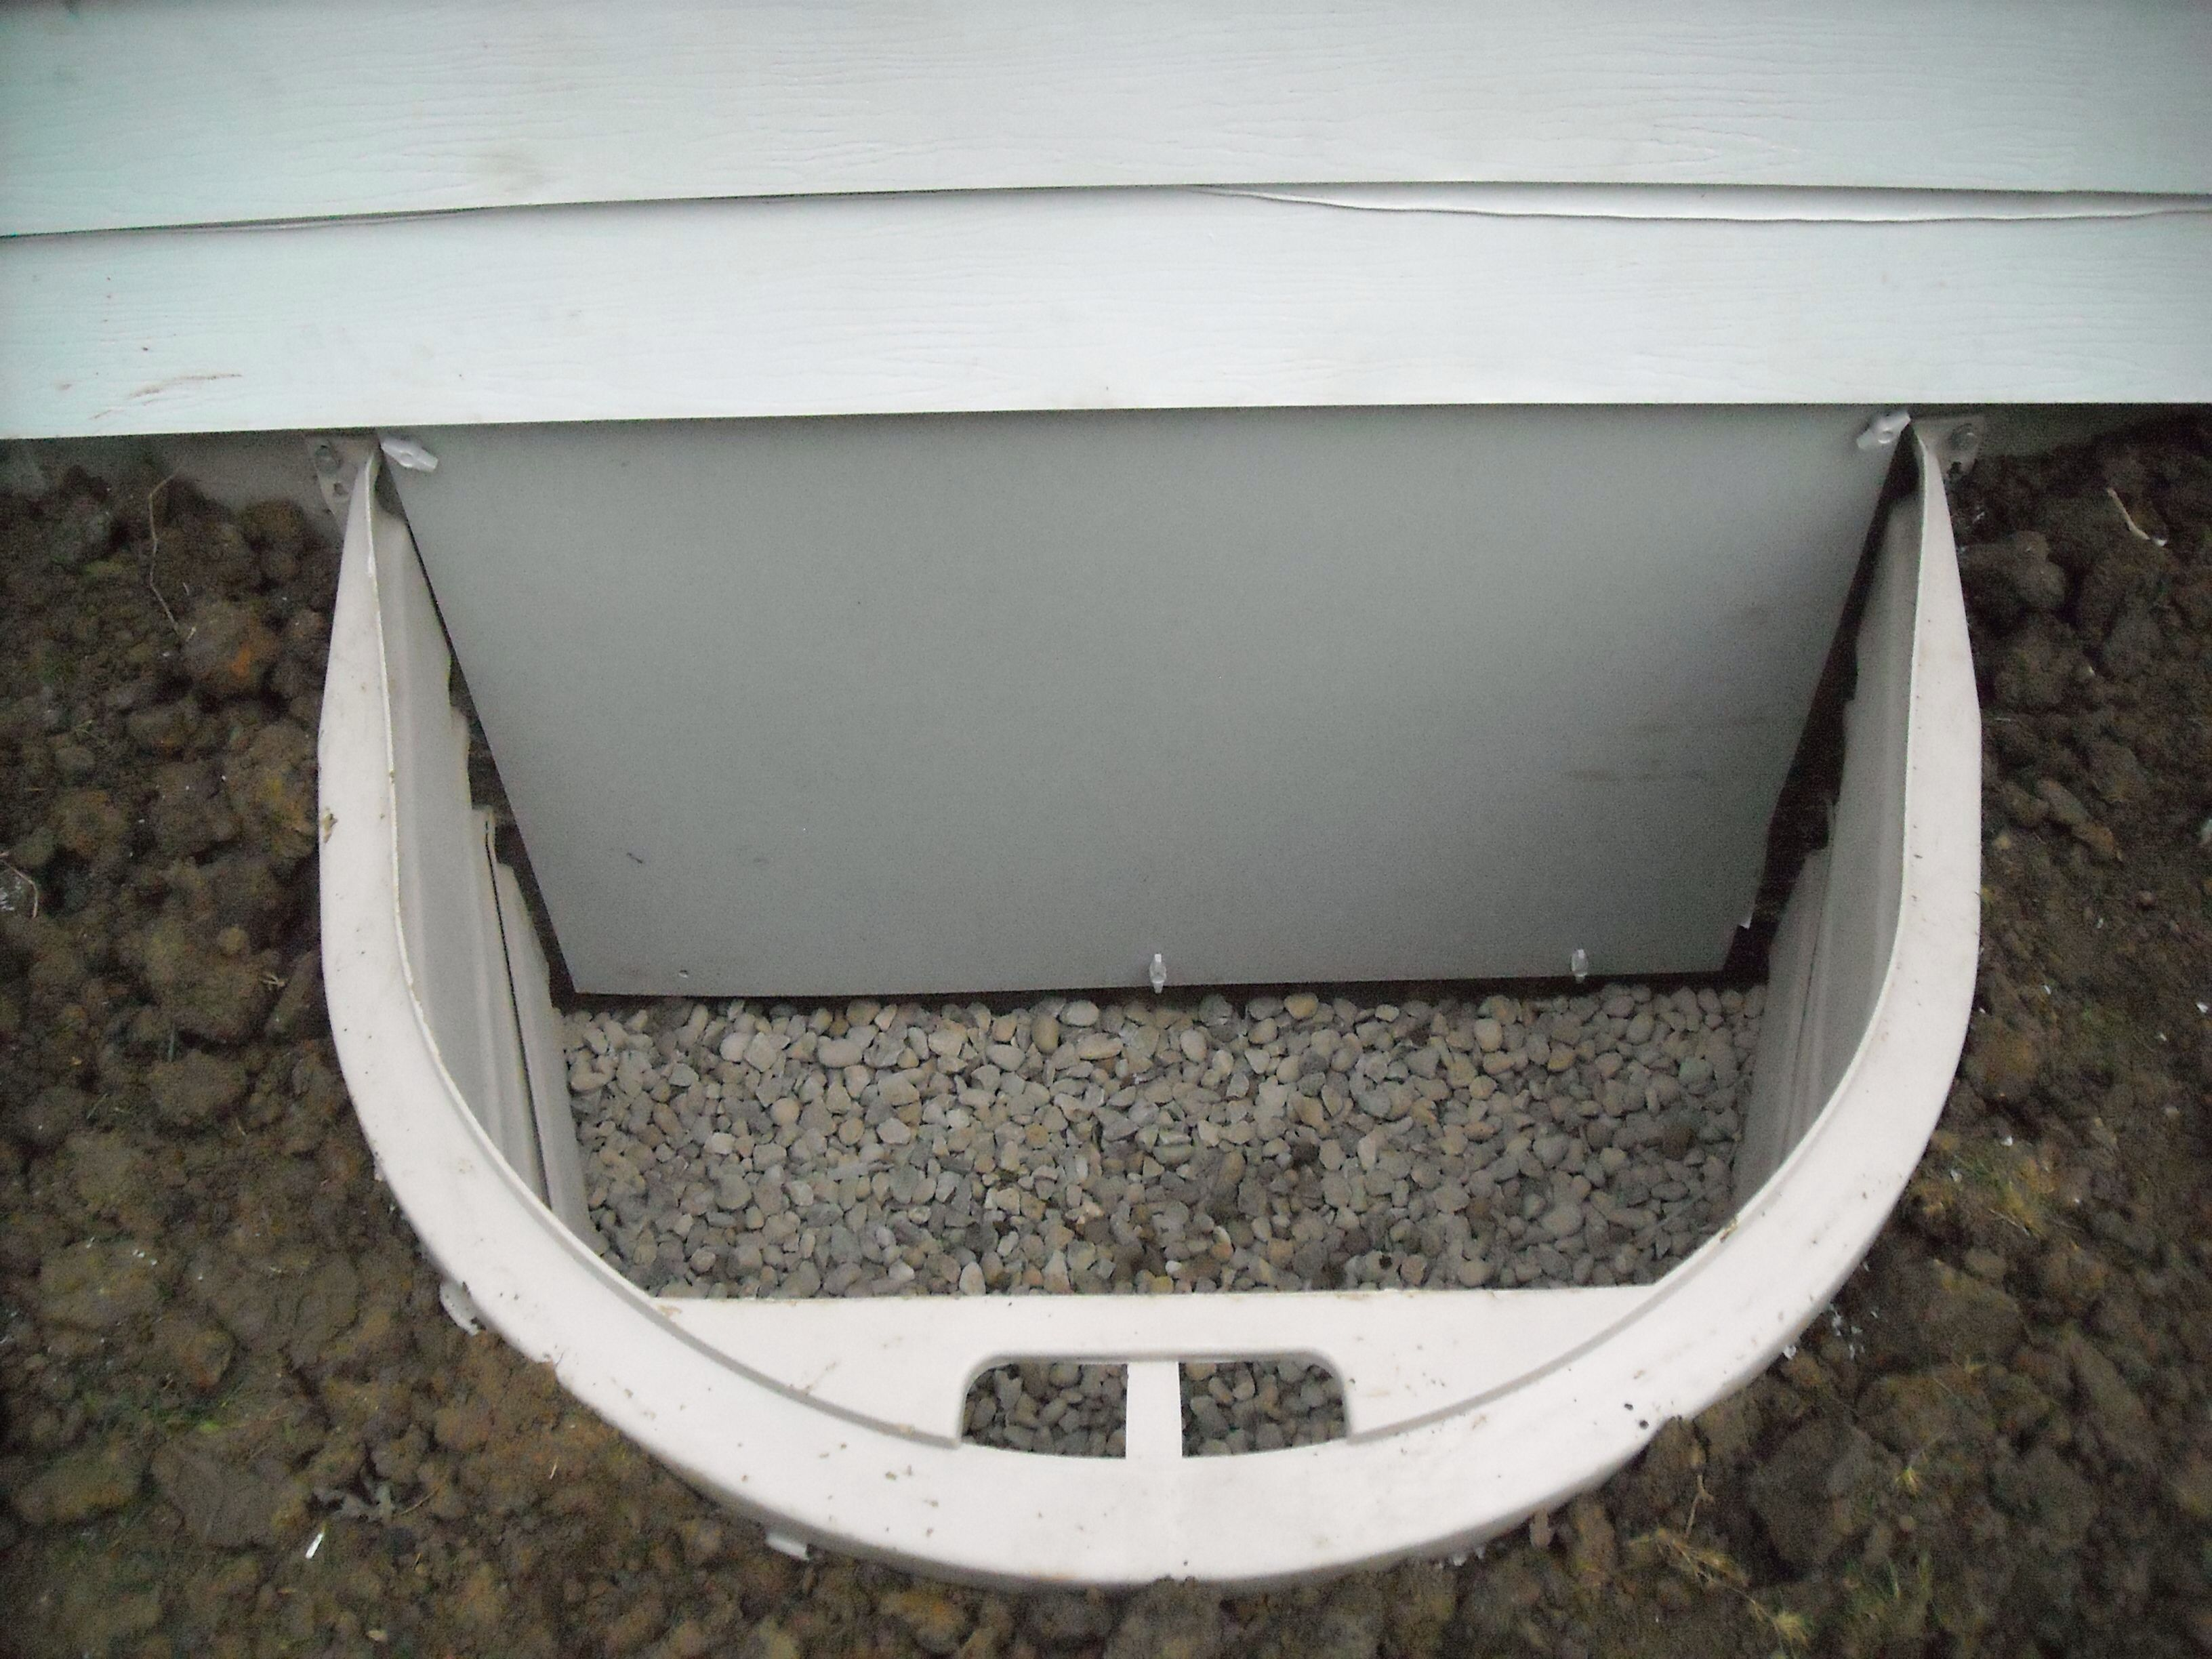 Crawl Space Entry Well And Weather Tight Door Exterior Crawl Space Door Crawl Space Cover Crawlspace